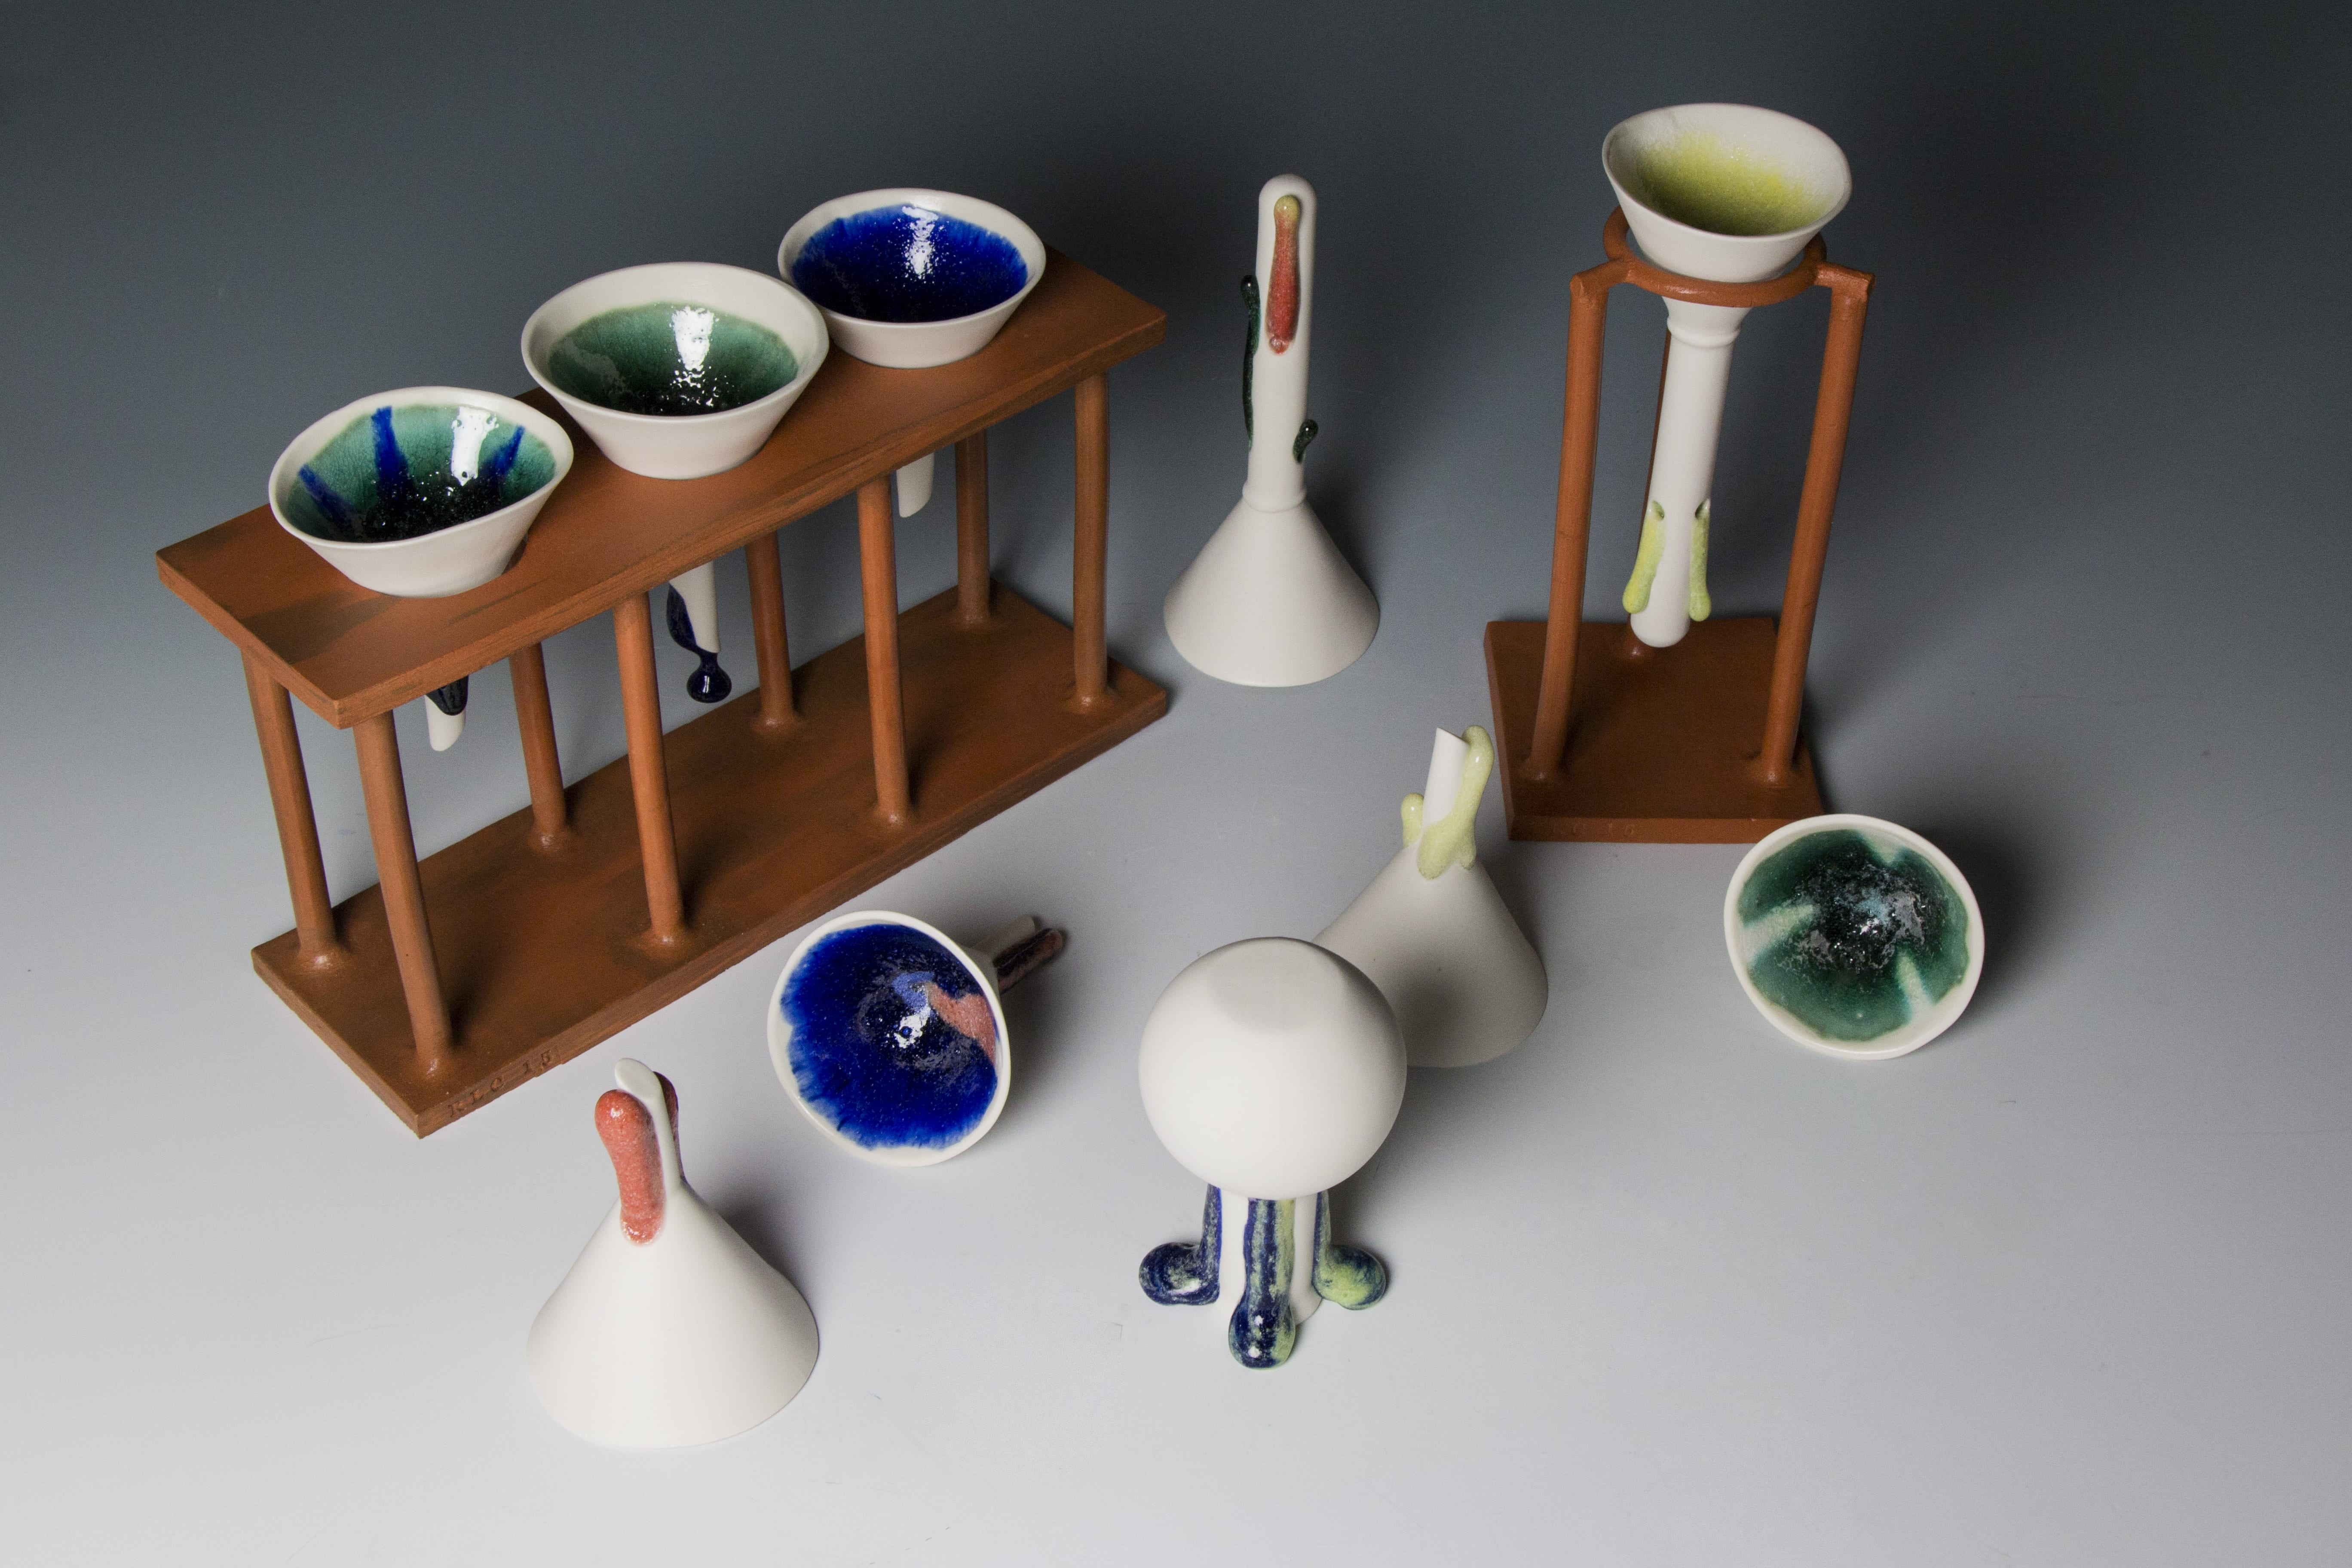 'A Material Experience' Collection